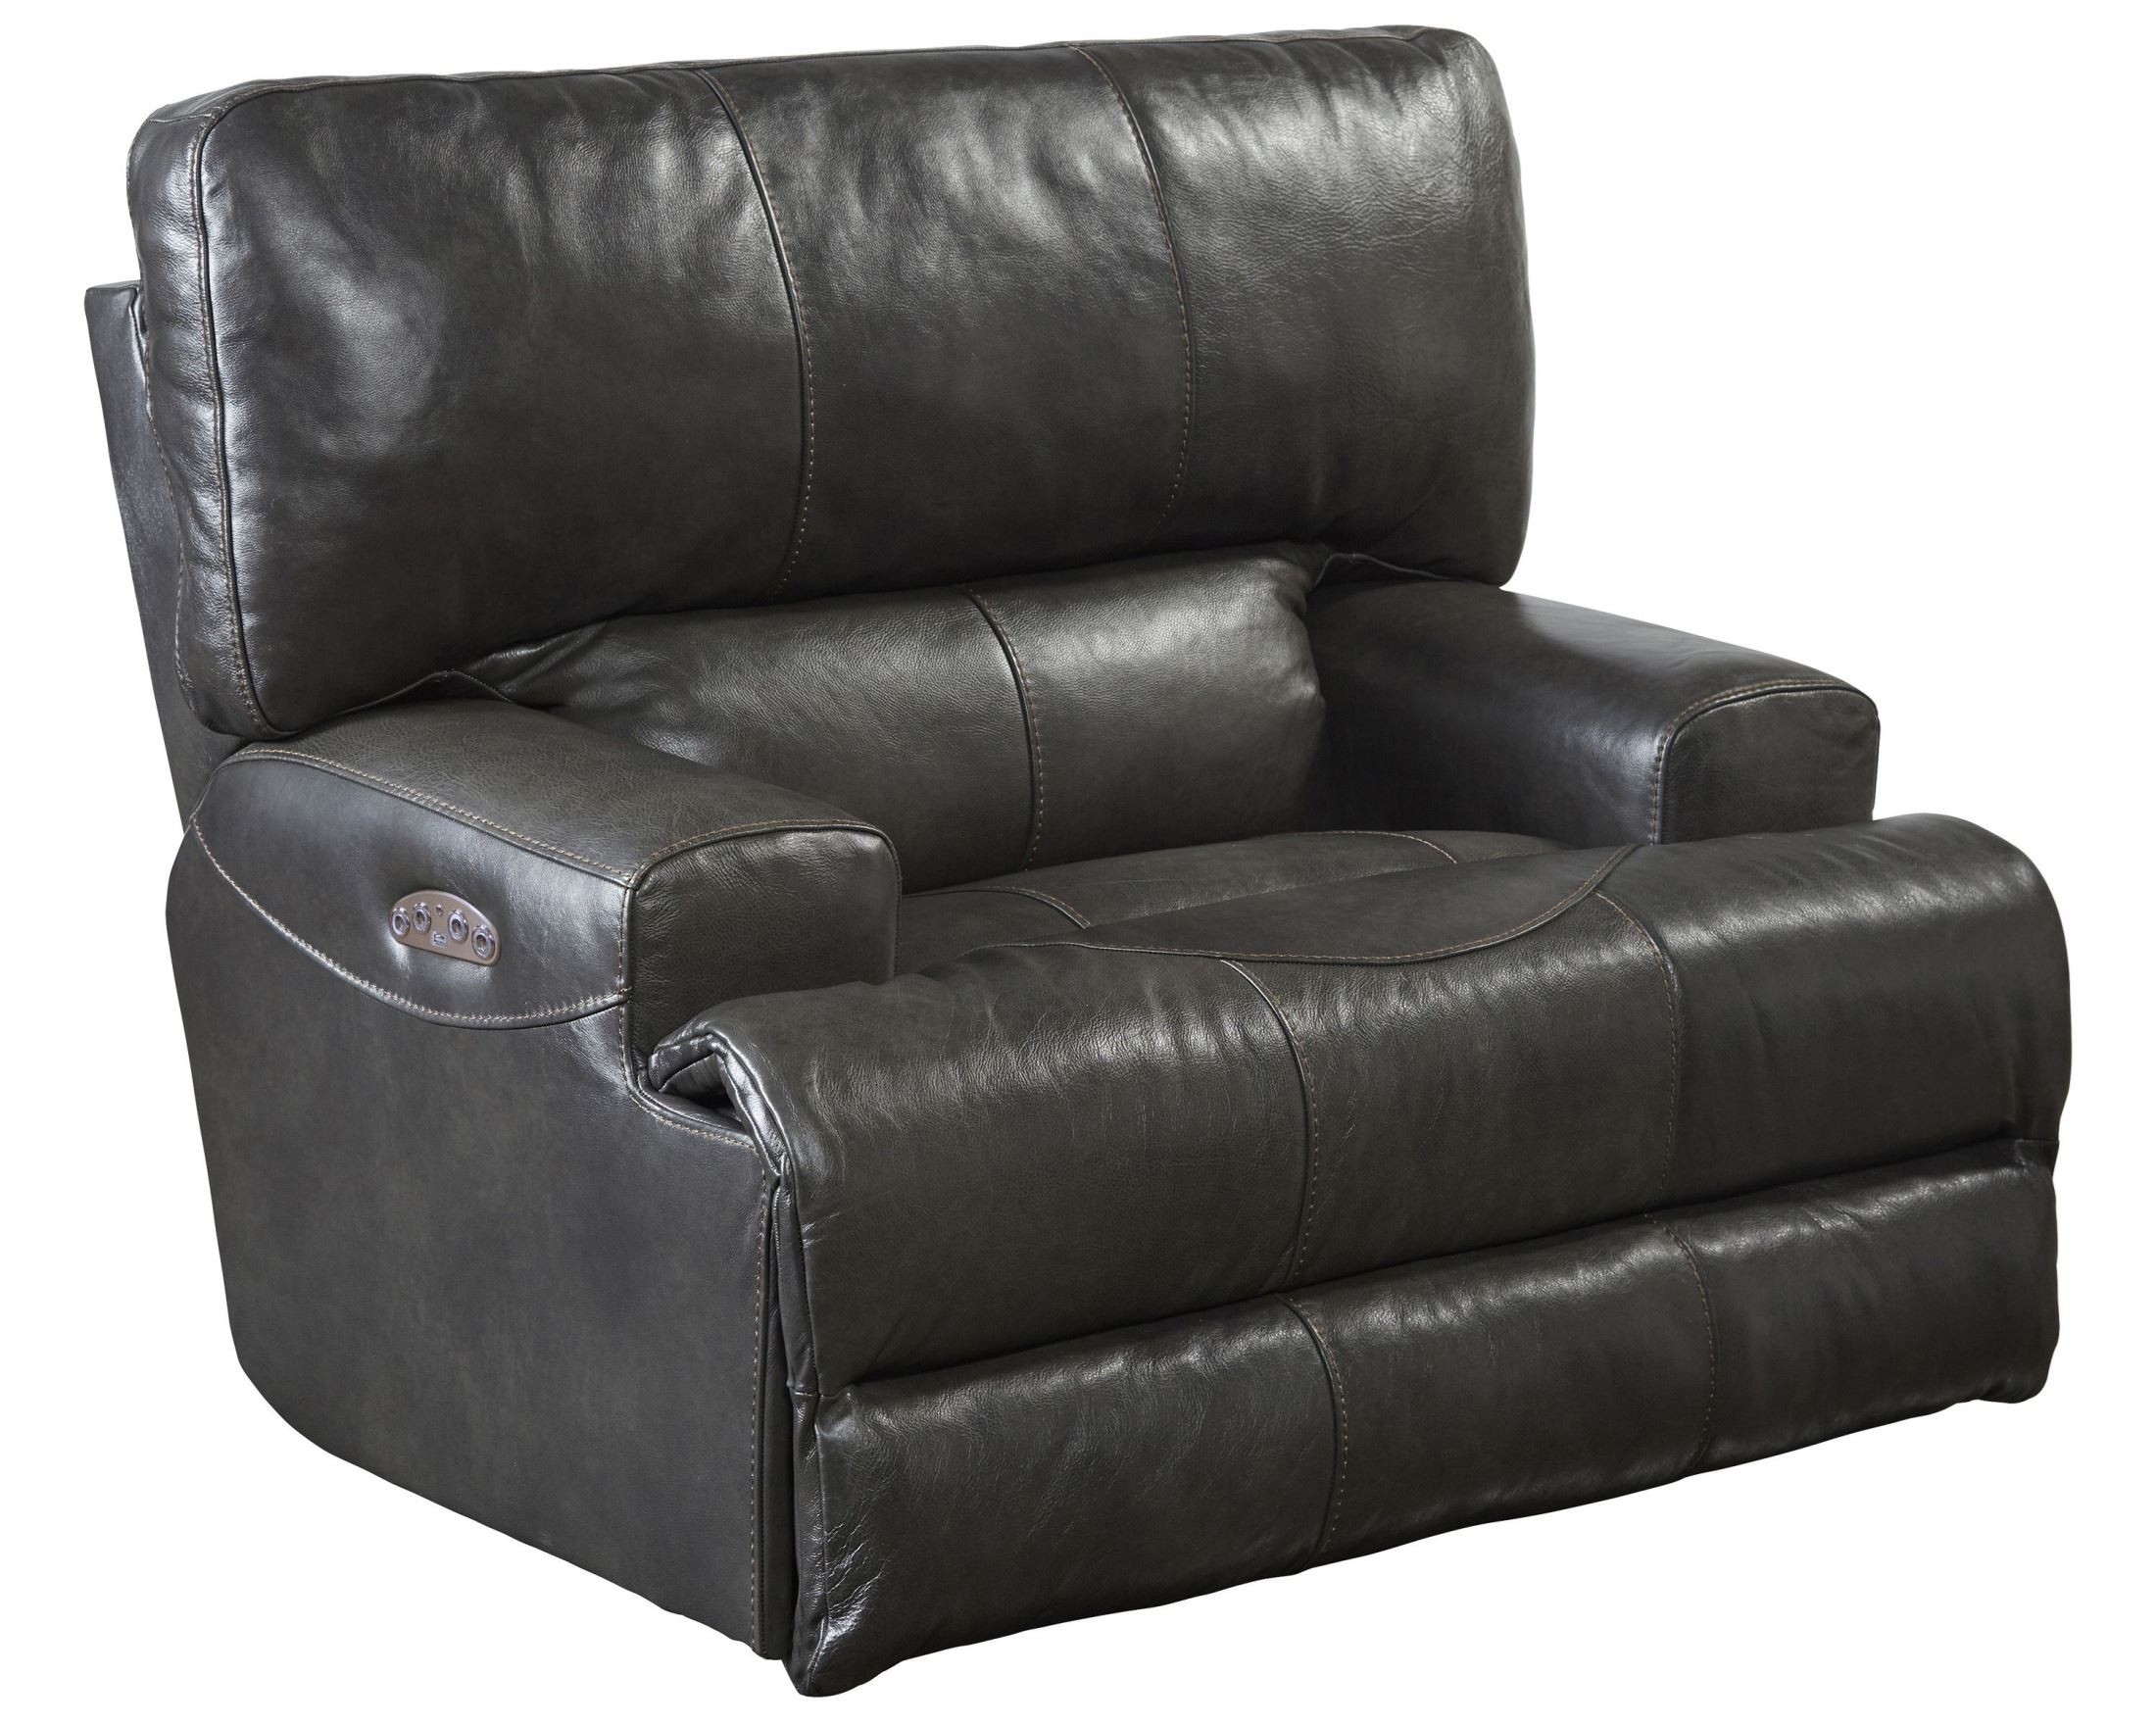 Wembley steel power lay flat recliner from catnapper for Catnapper cloud nine chaise recliner